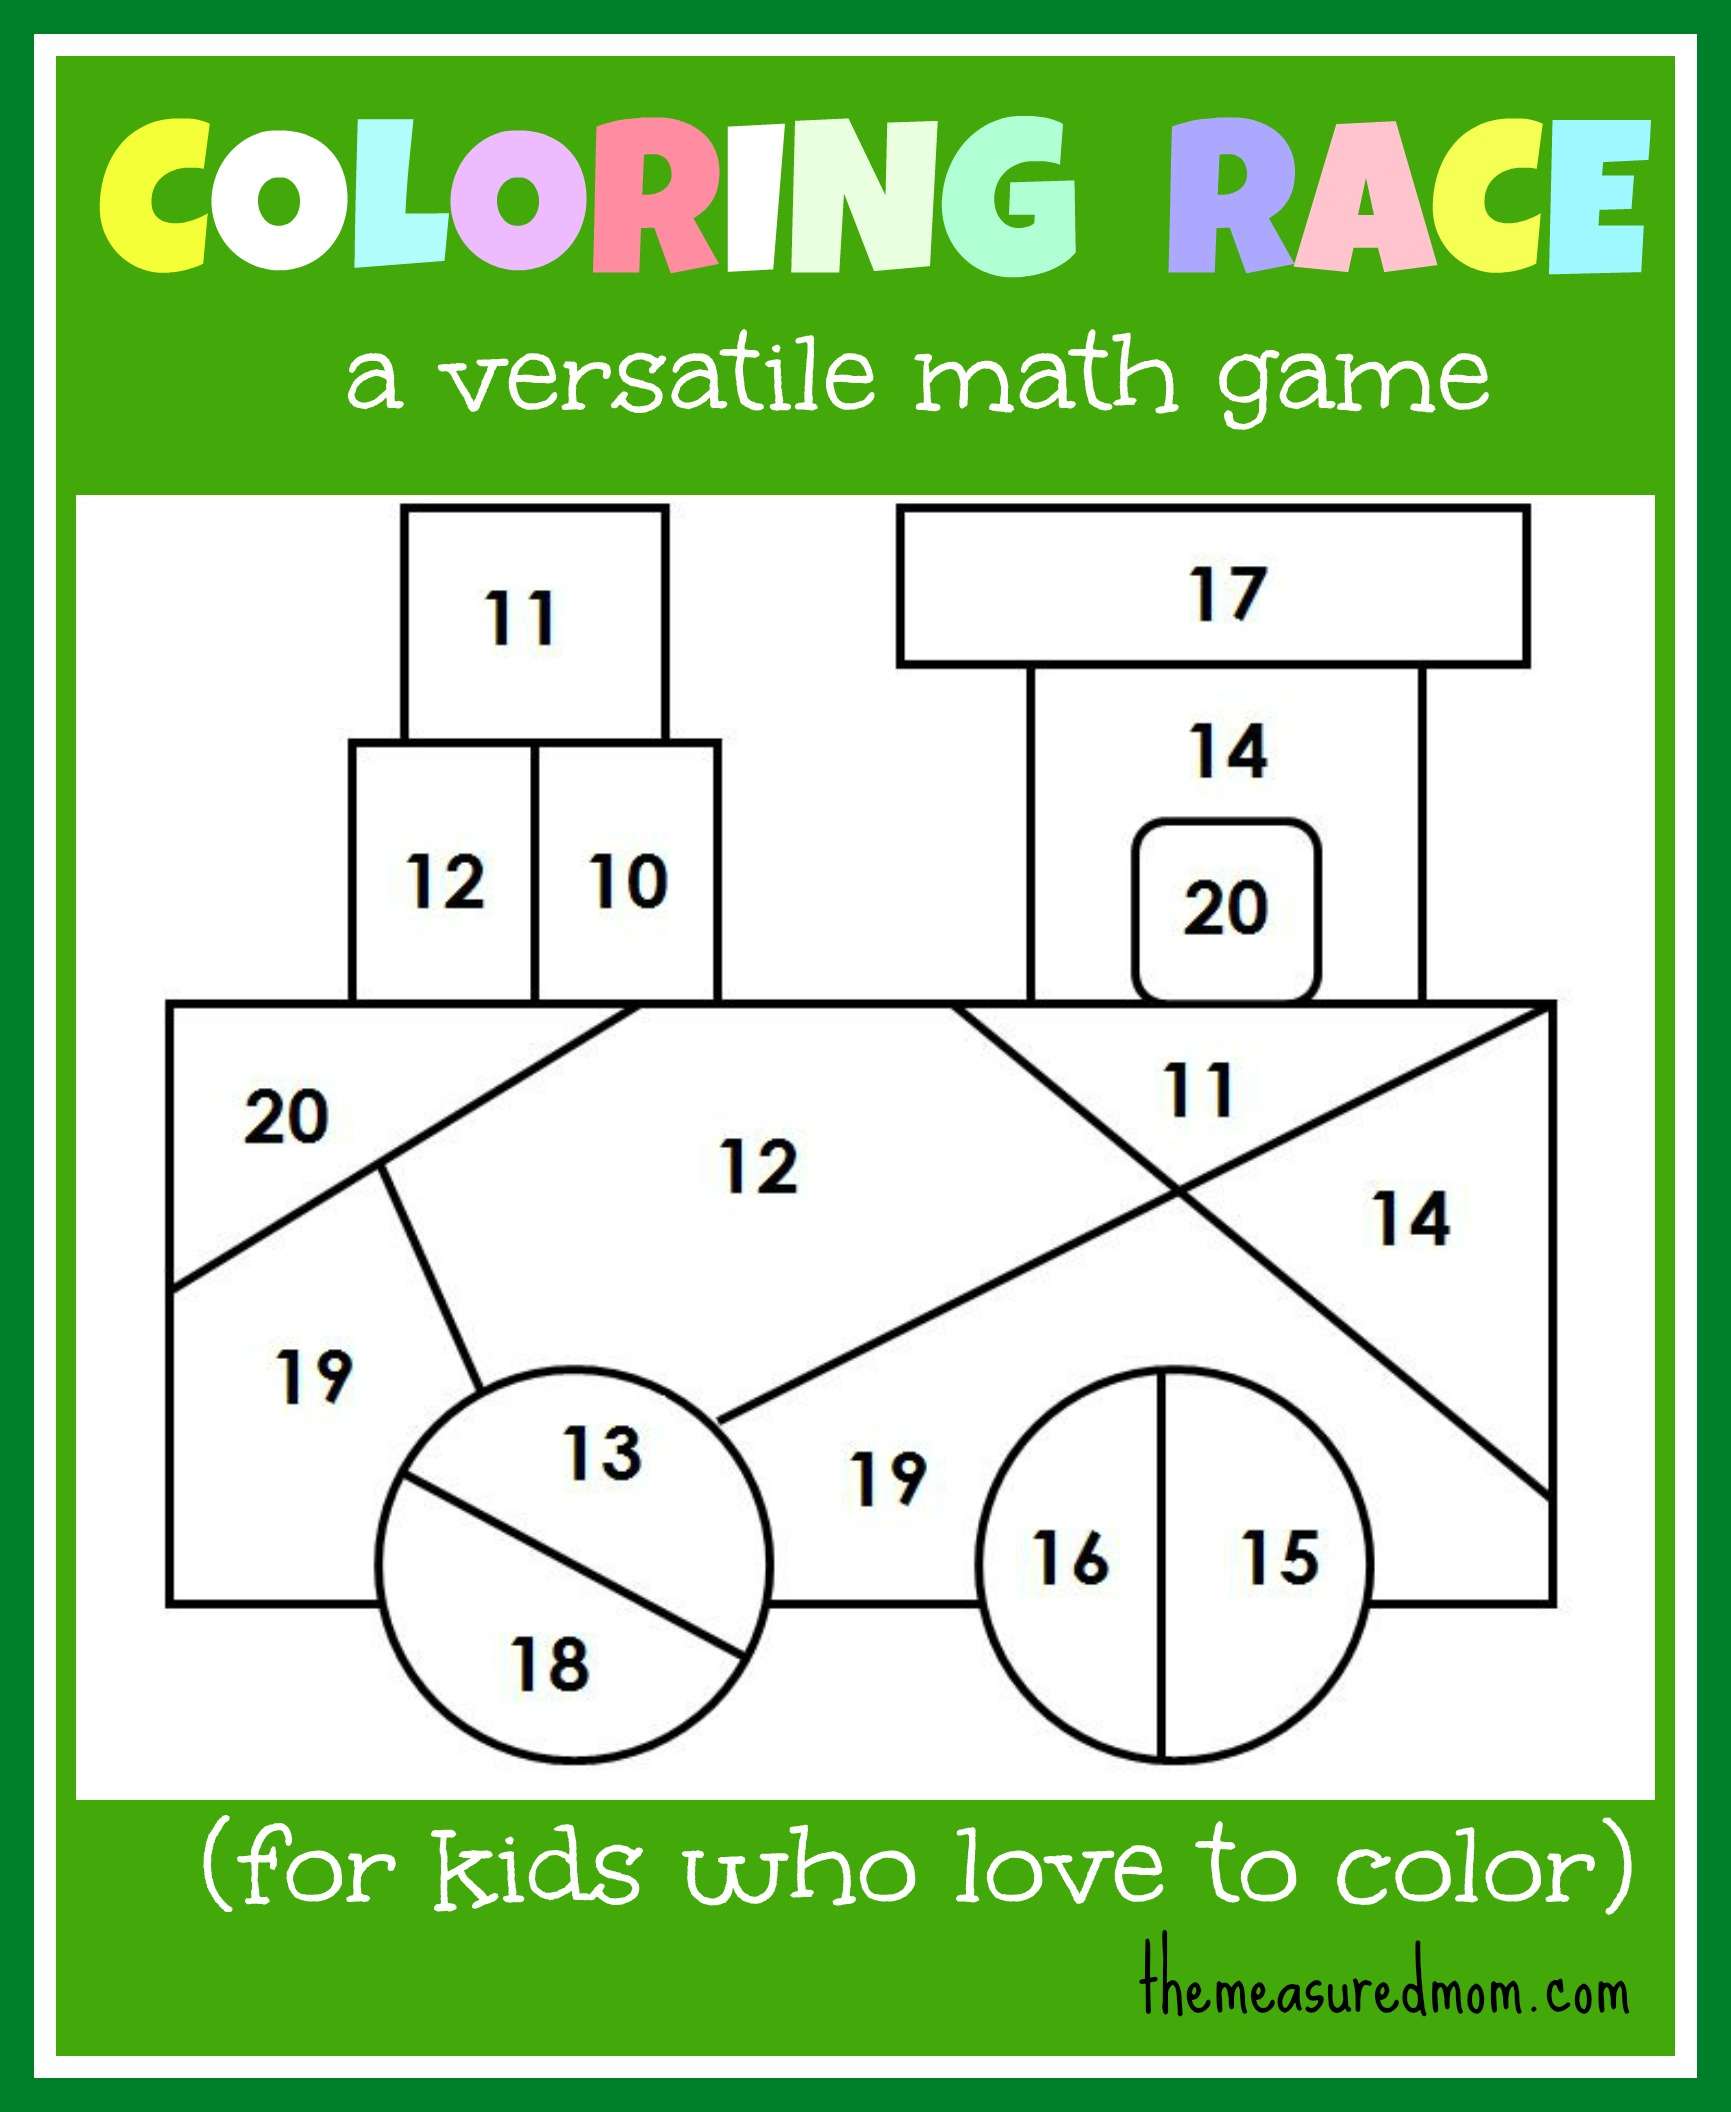 Math game for kids: Coloring Race combines math and coloring - The ...